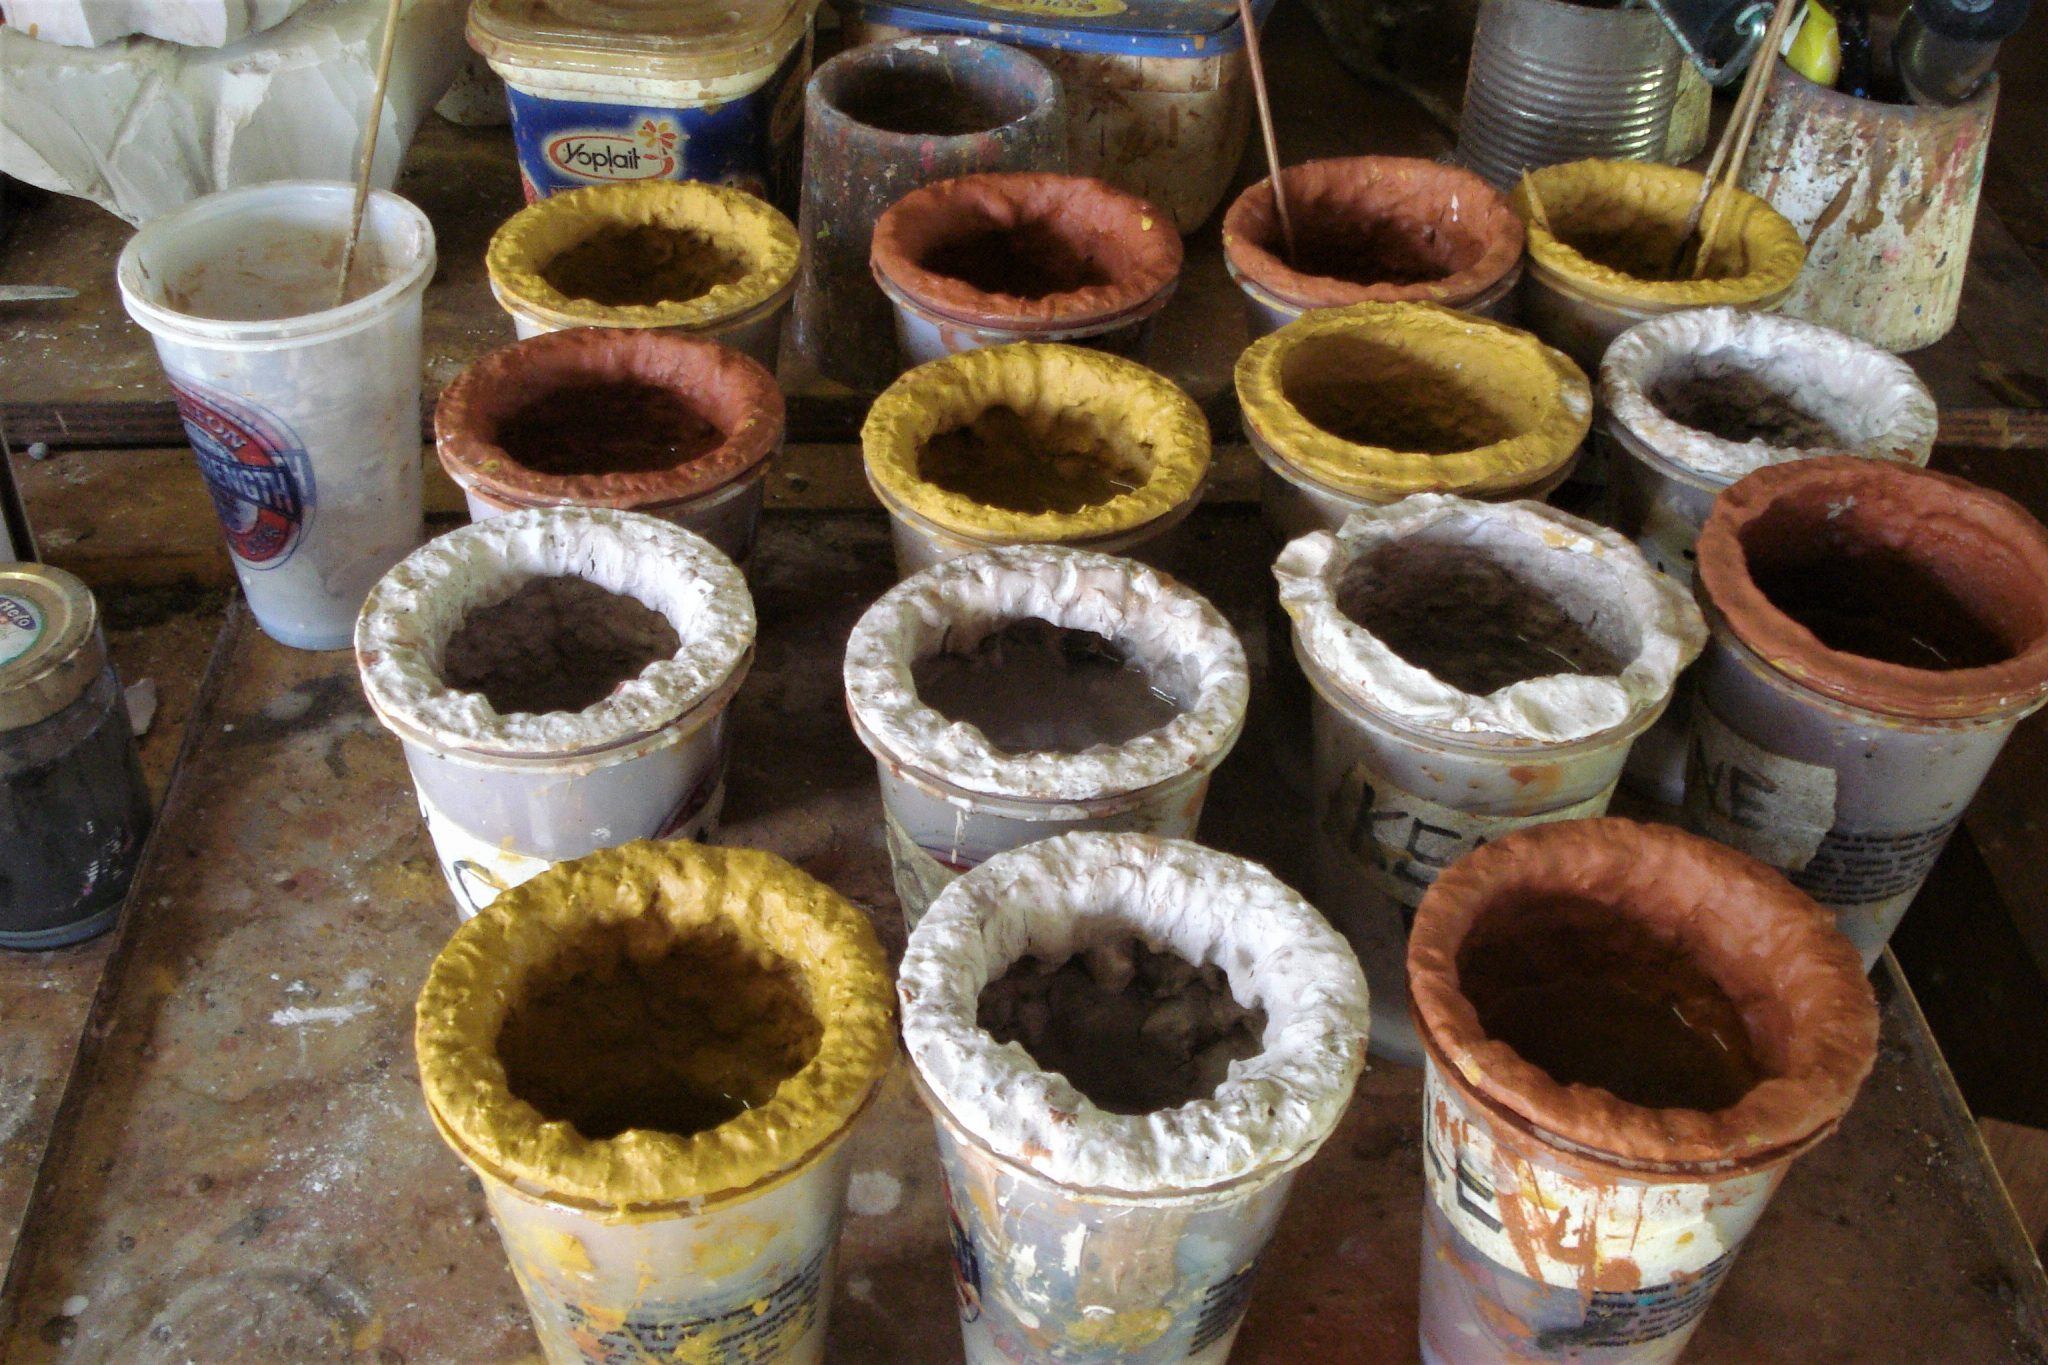 Several buckets of white, yellow and orange ochre paint sitting on a table on my Tiwi Islands day tour